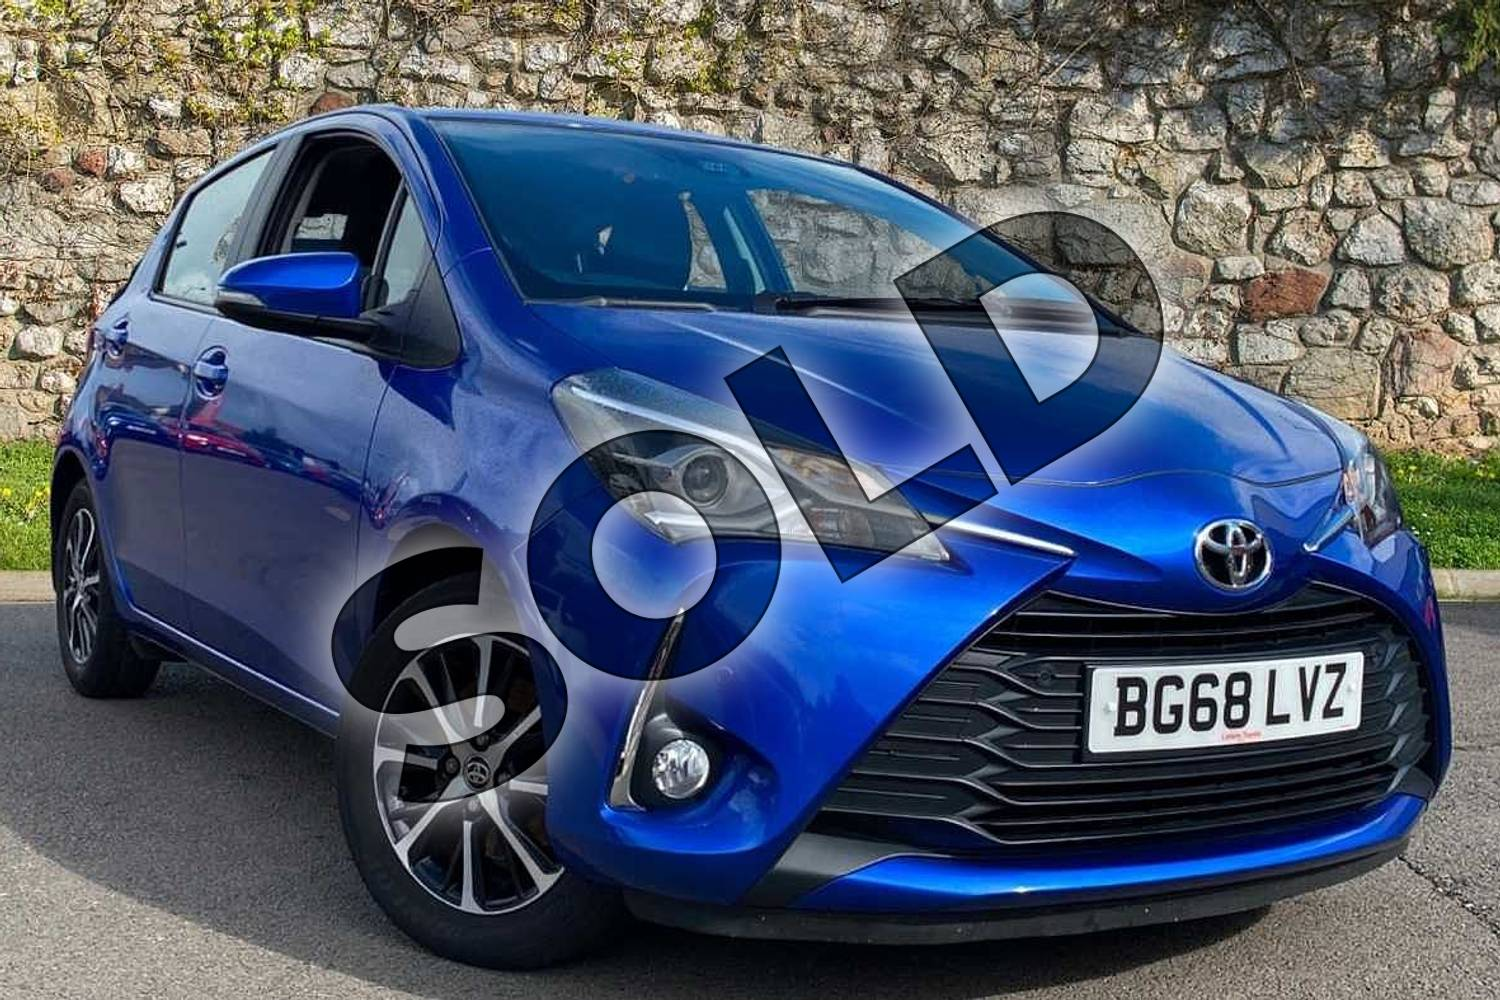 2018 Toyota Yaris Hatchback 1.5 VVT-i Icon Tech 5dr in Nebula Blue at Listers Toyota Coventry